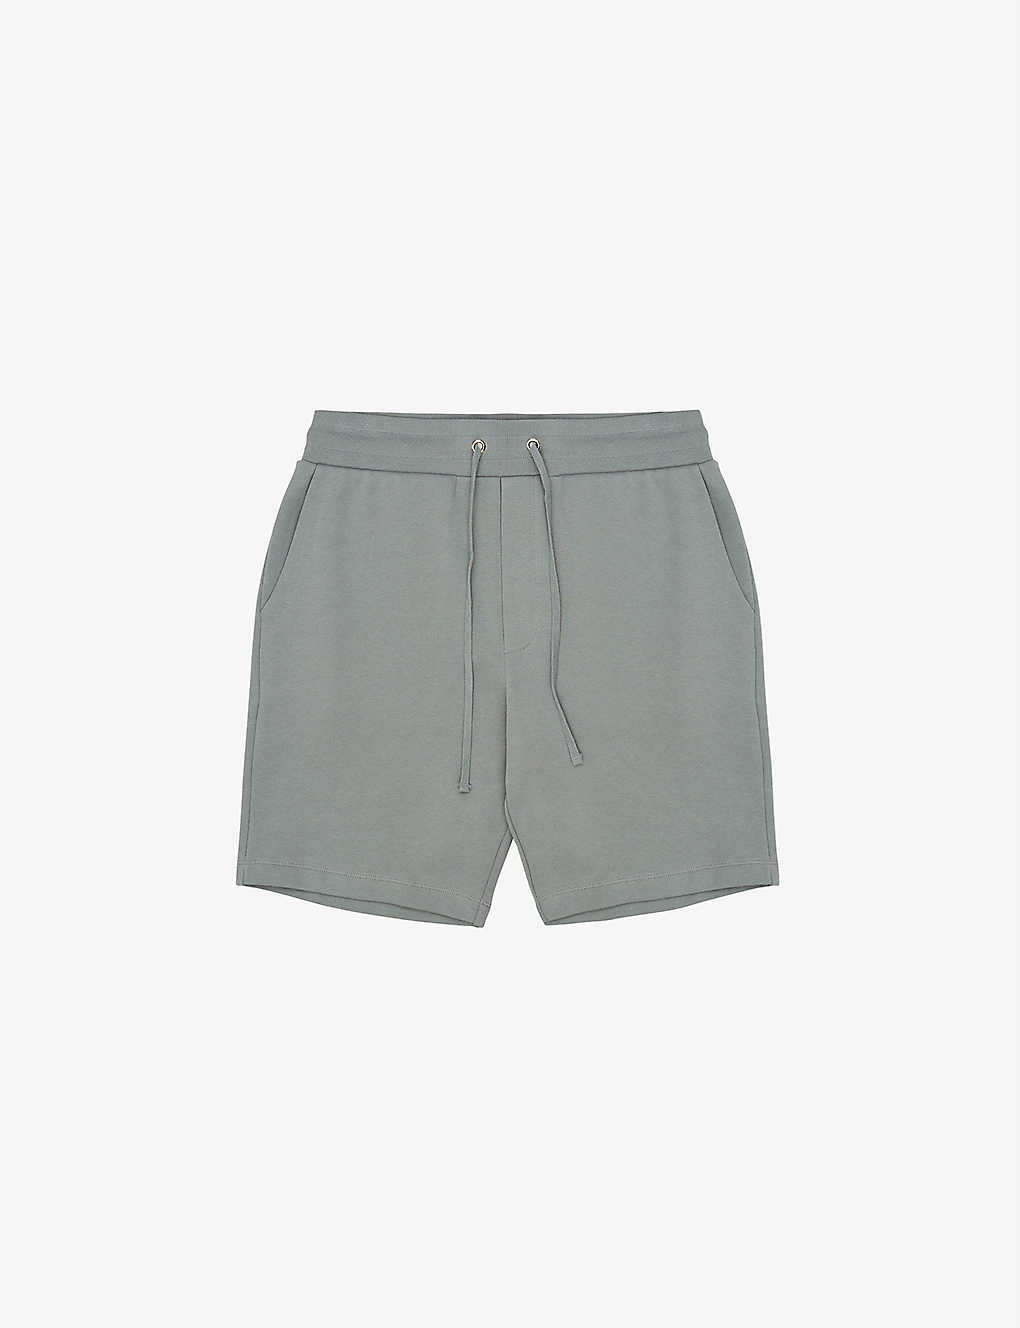 REISS: Belsay slim-fit cotton-jersey shorts